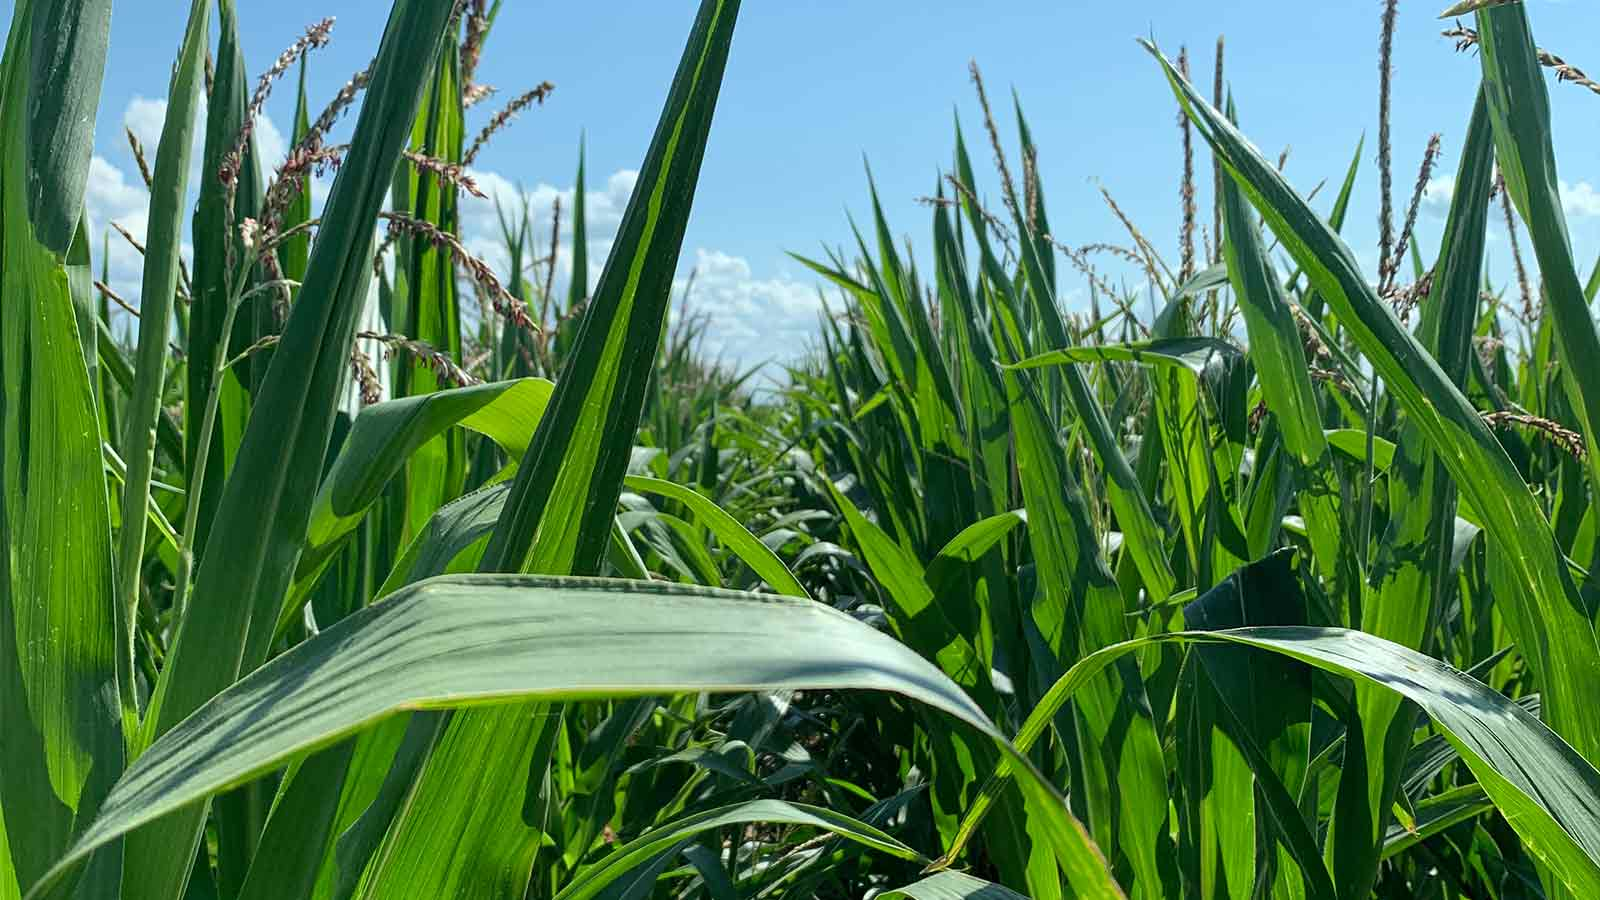 Boosting-corn-growth-with-digital-agriculture